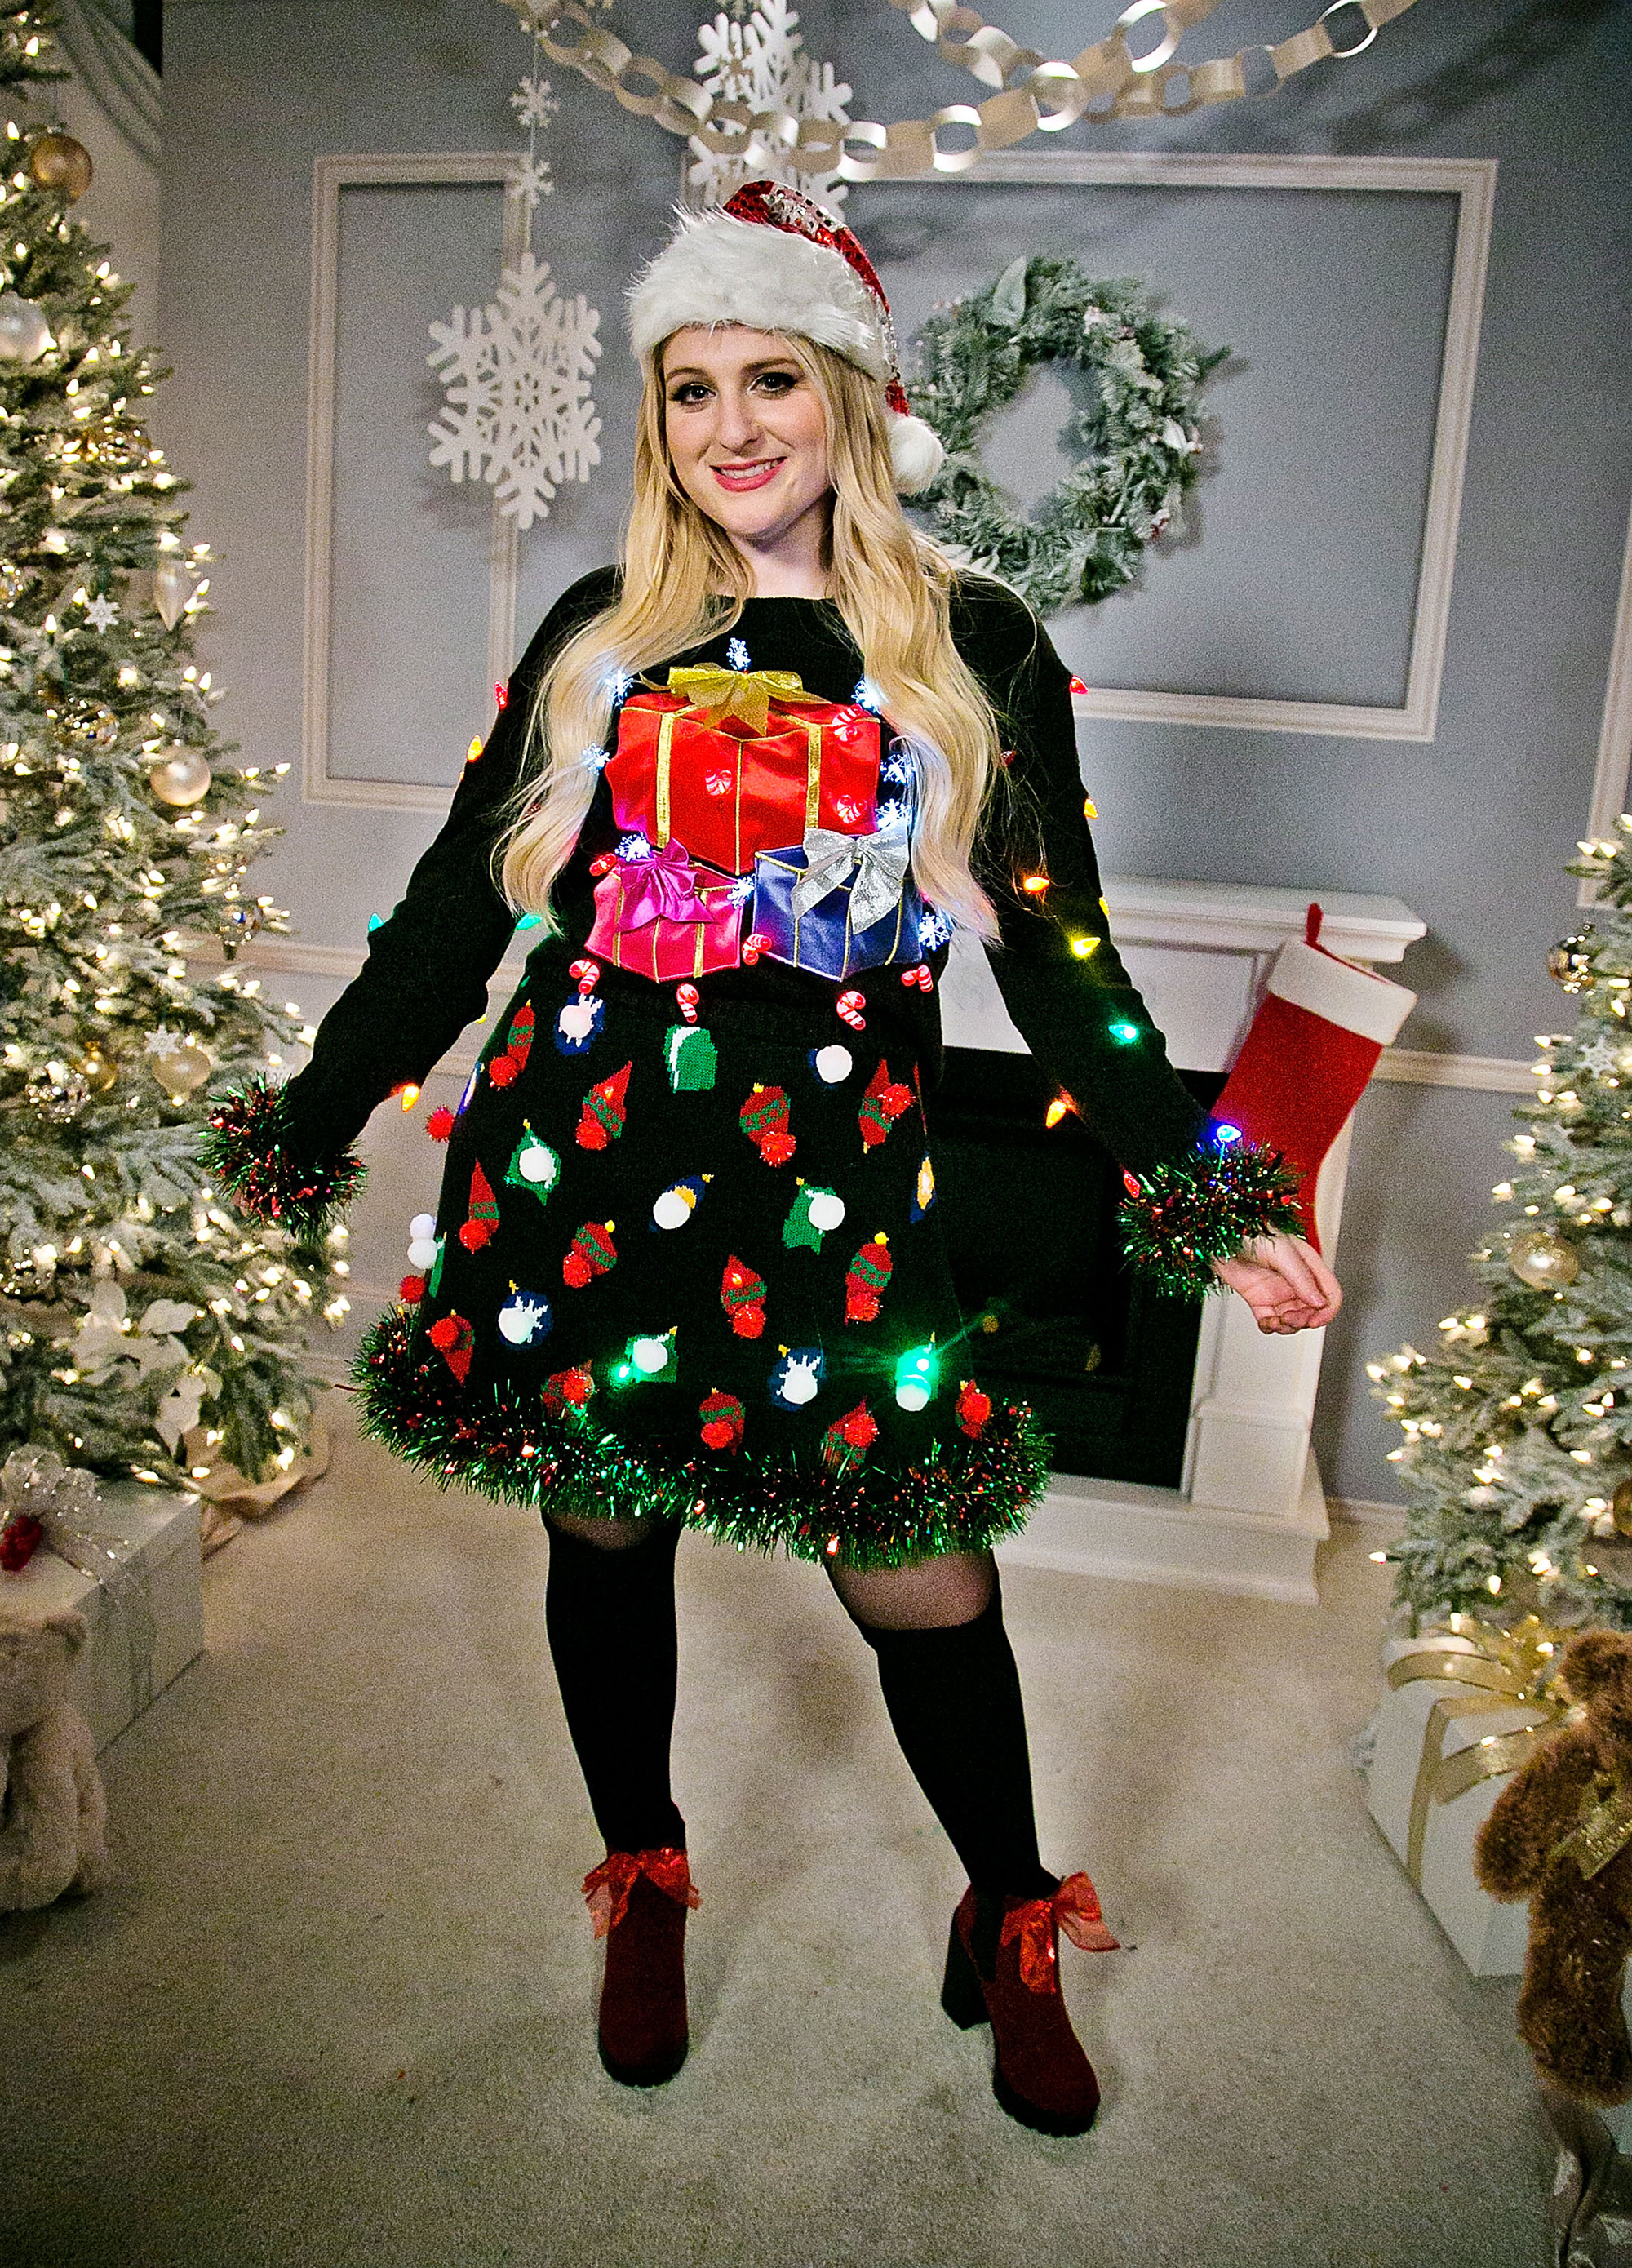 celebrity ugly christmas sweater - LOS ANGELES, CA – DECEMBER 04: Meghan Trainor attends 102.7 KIIS FM's Jingle Ball at Staples Center on December 4, 2015 in Los Angeles, California. (Photo by Gabriel Olsen/Getty Images)